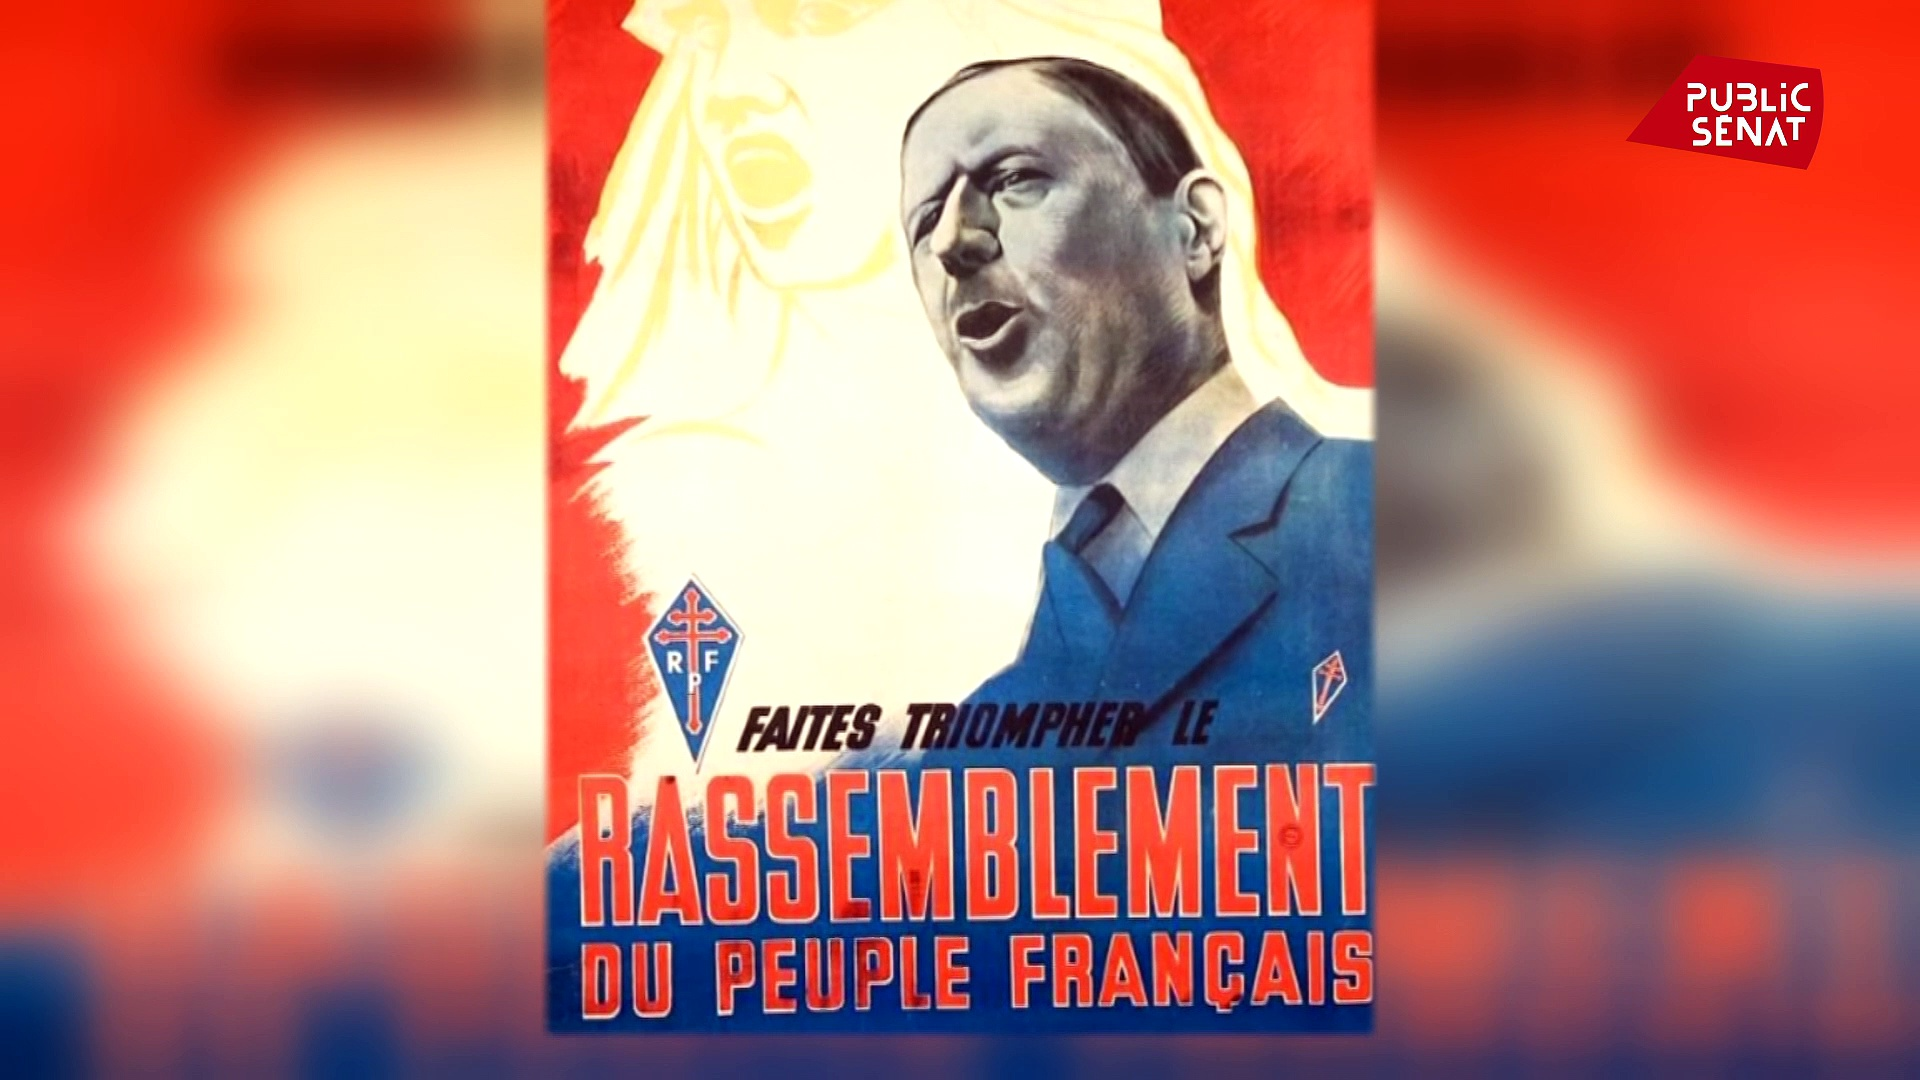 Documentaire De Gaulle, le monarque et le Parlement